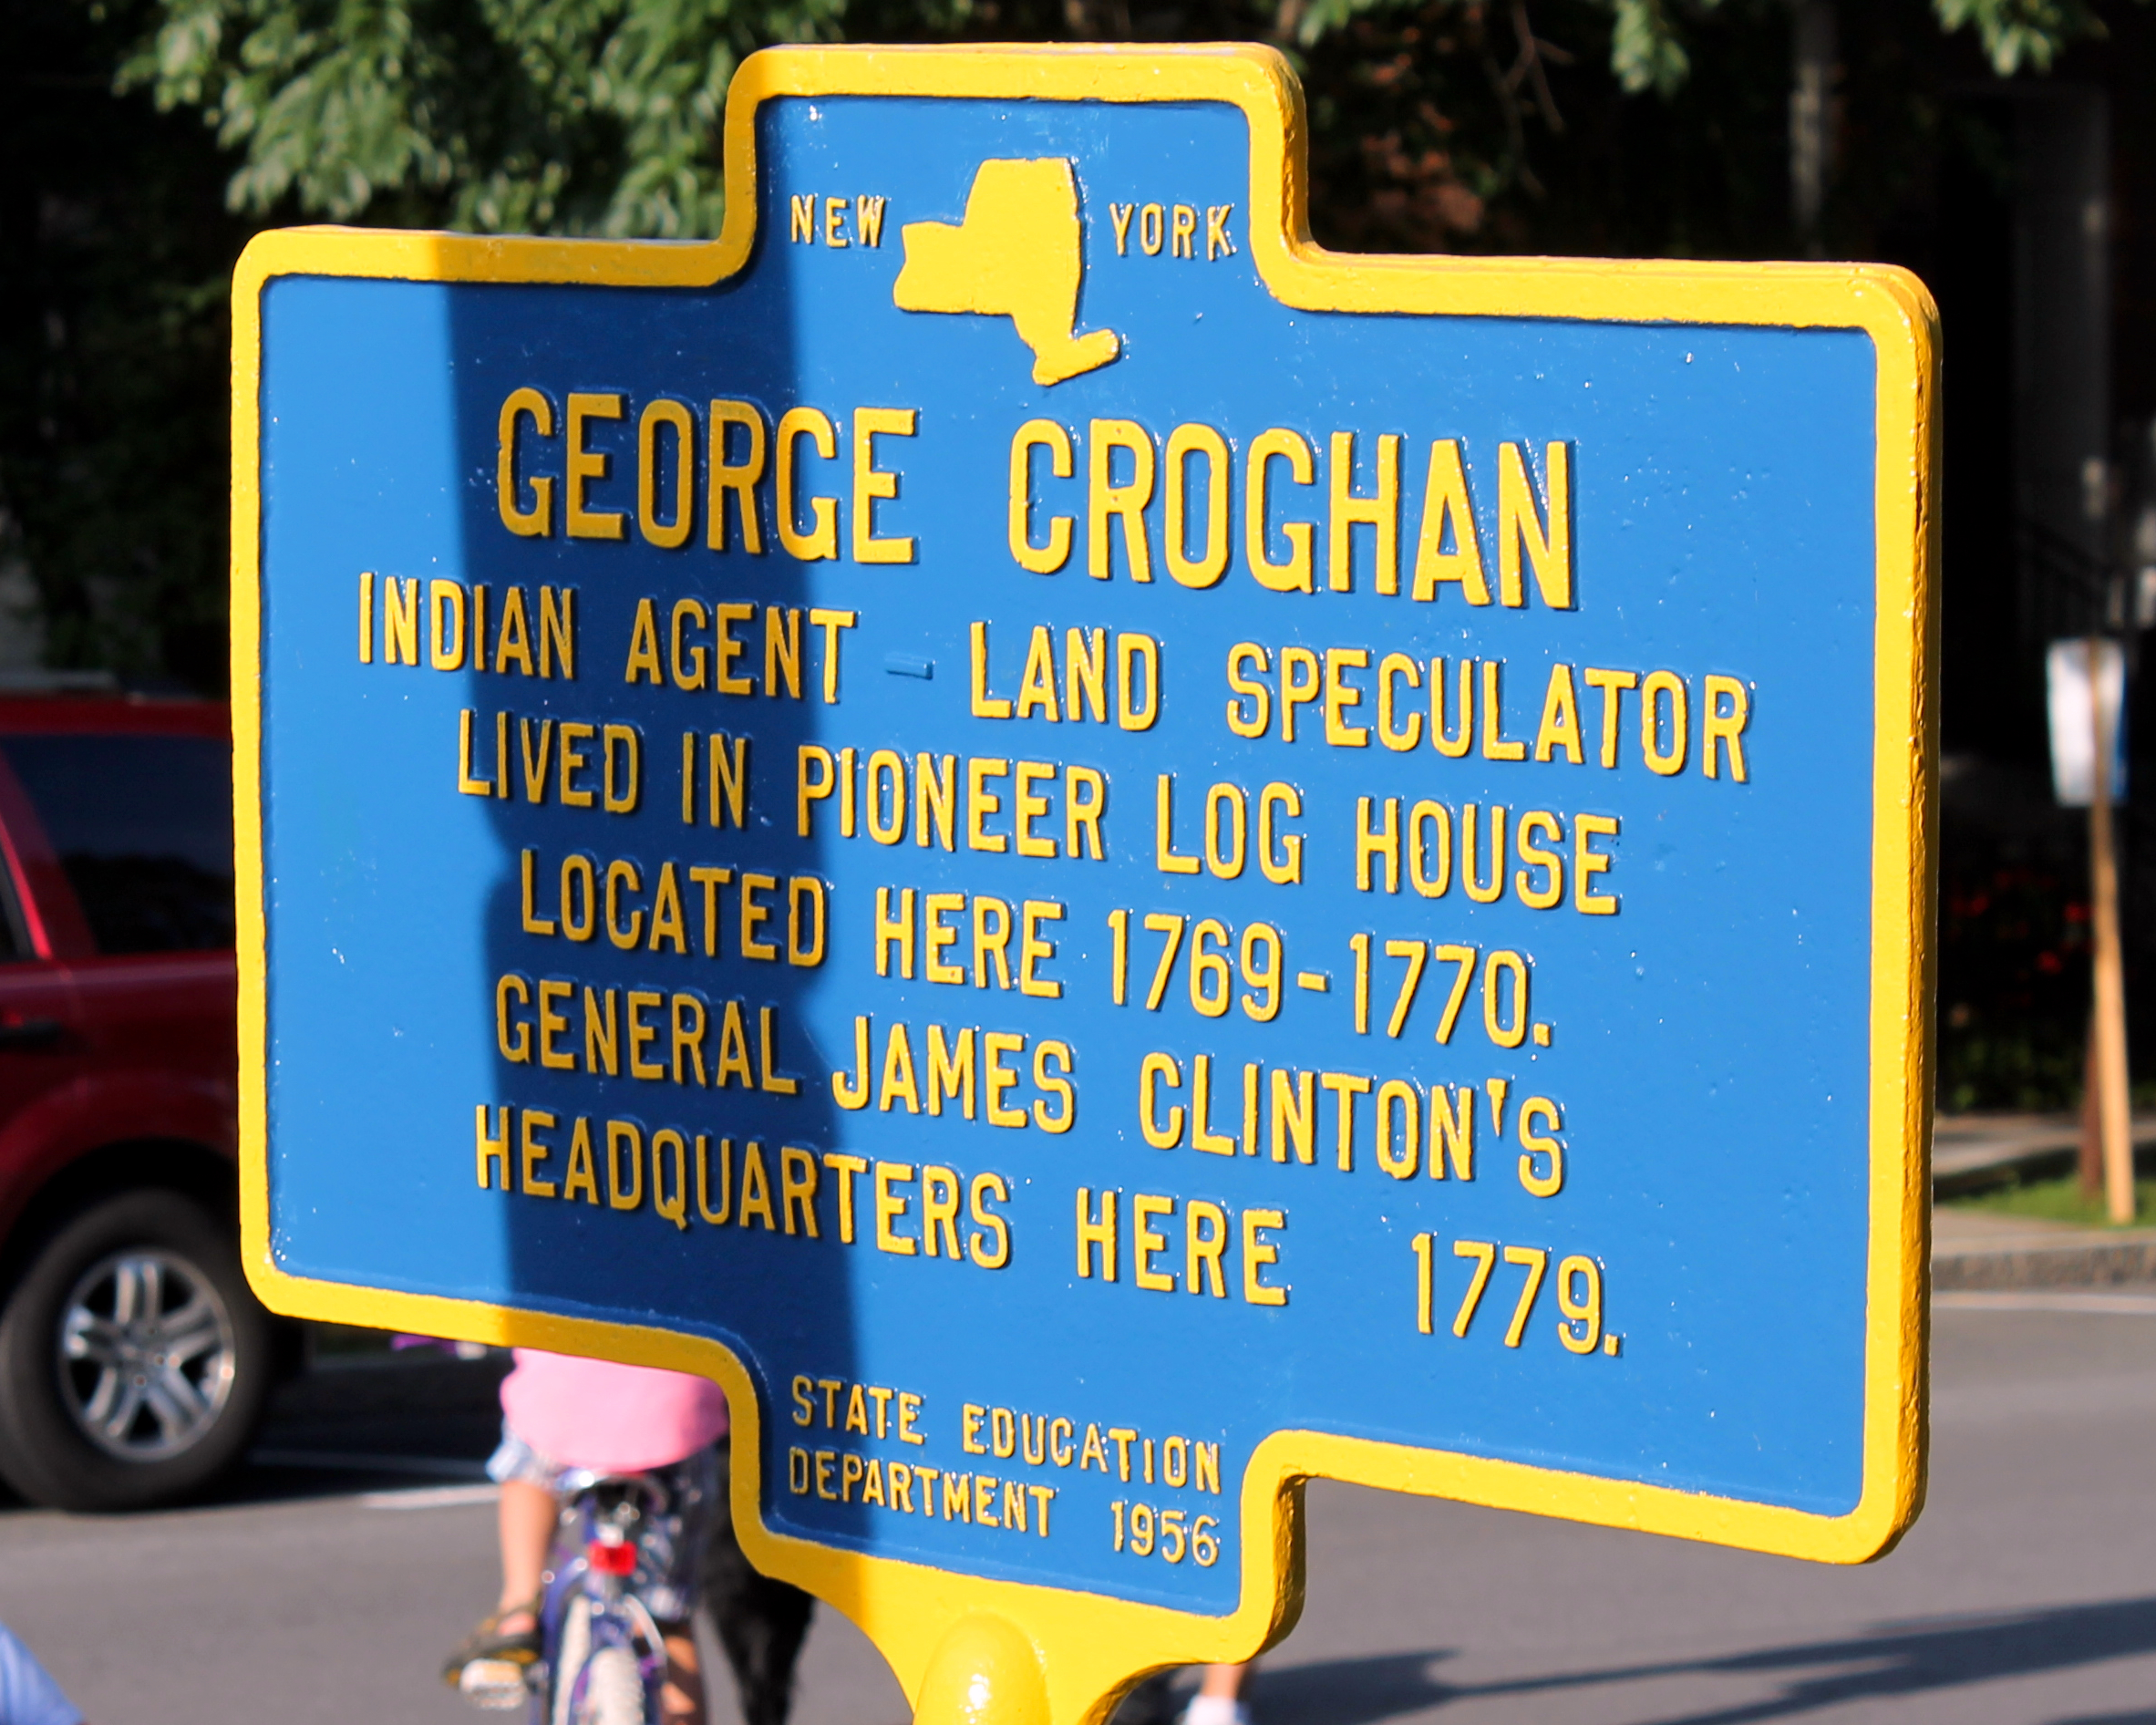 File:George Croghan historical marker in Cooperstown NY 2014.jpg